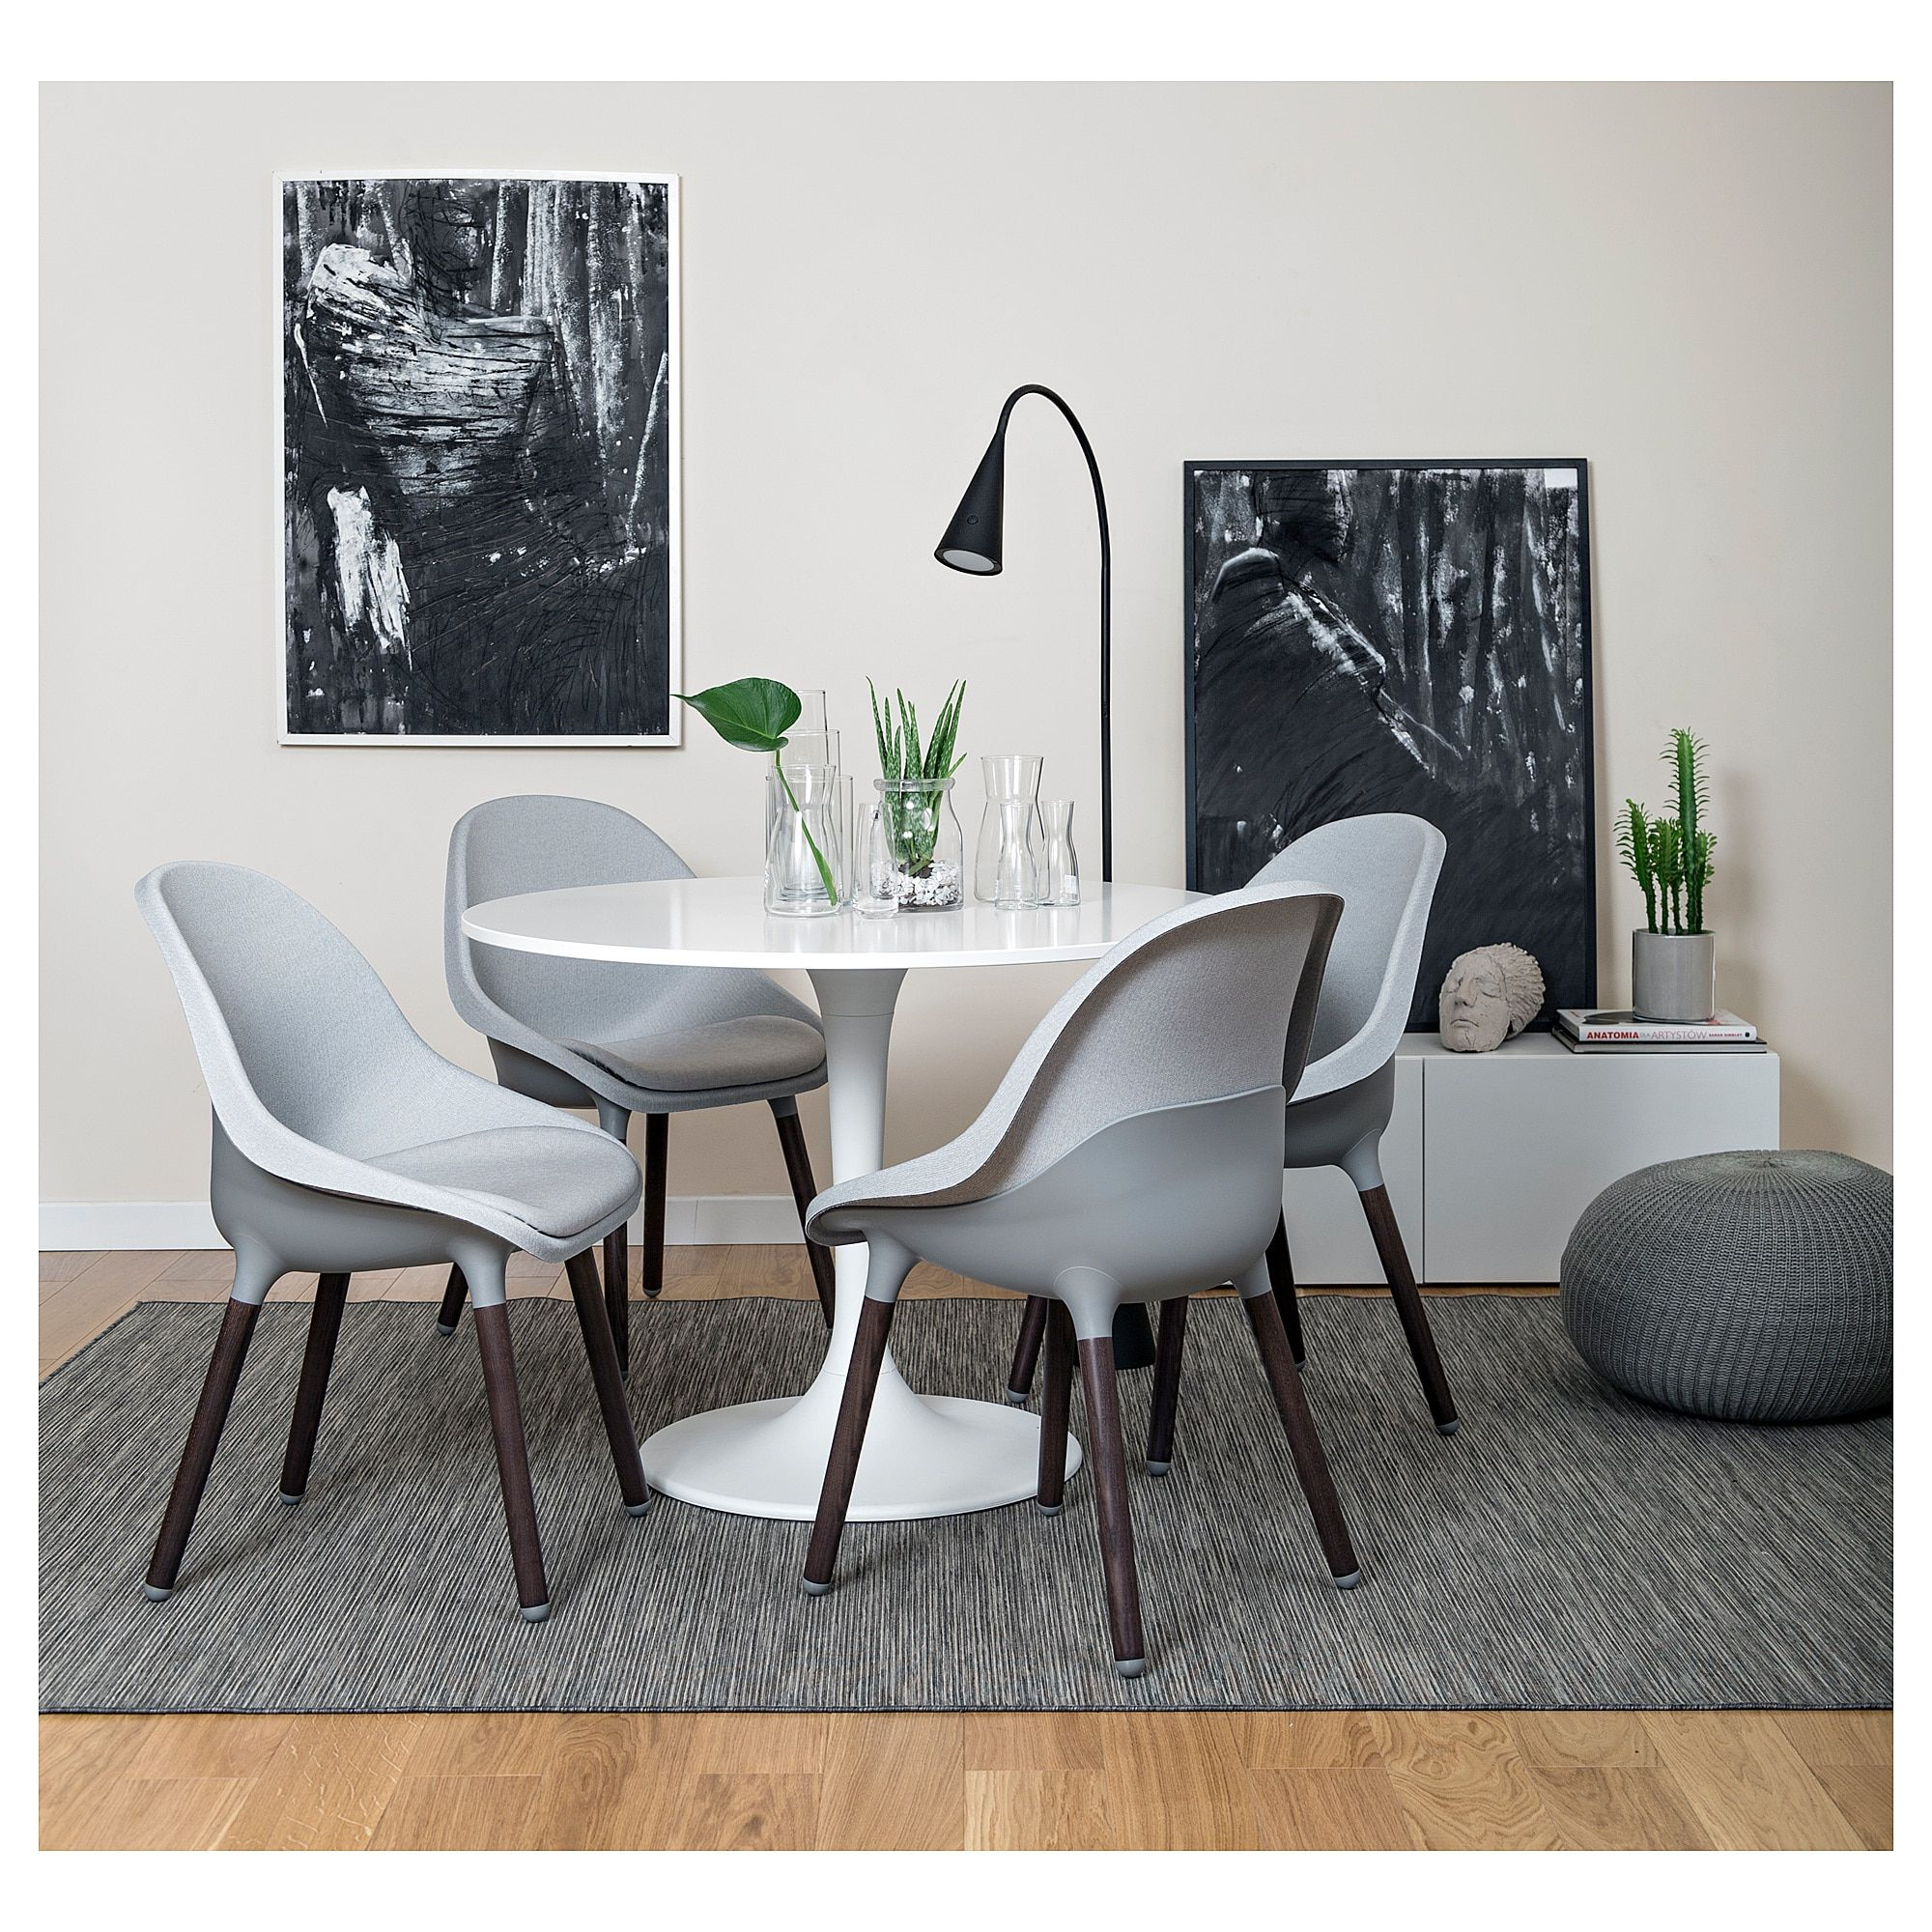 Comedor Ikea Ikea Baltsar Chair Light Gray Brown In 2019 Living Easy